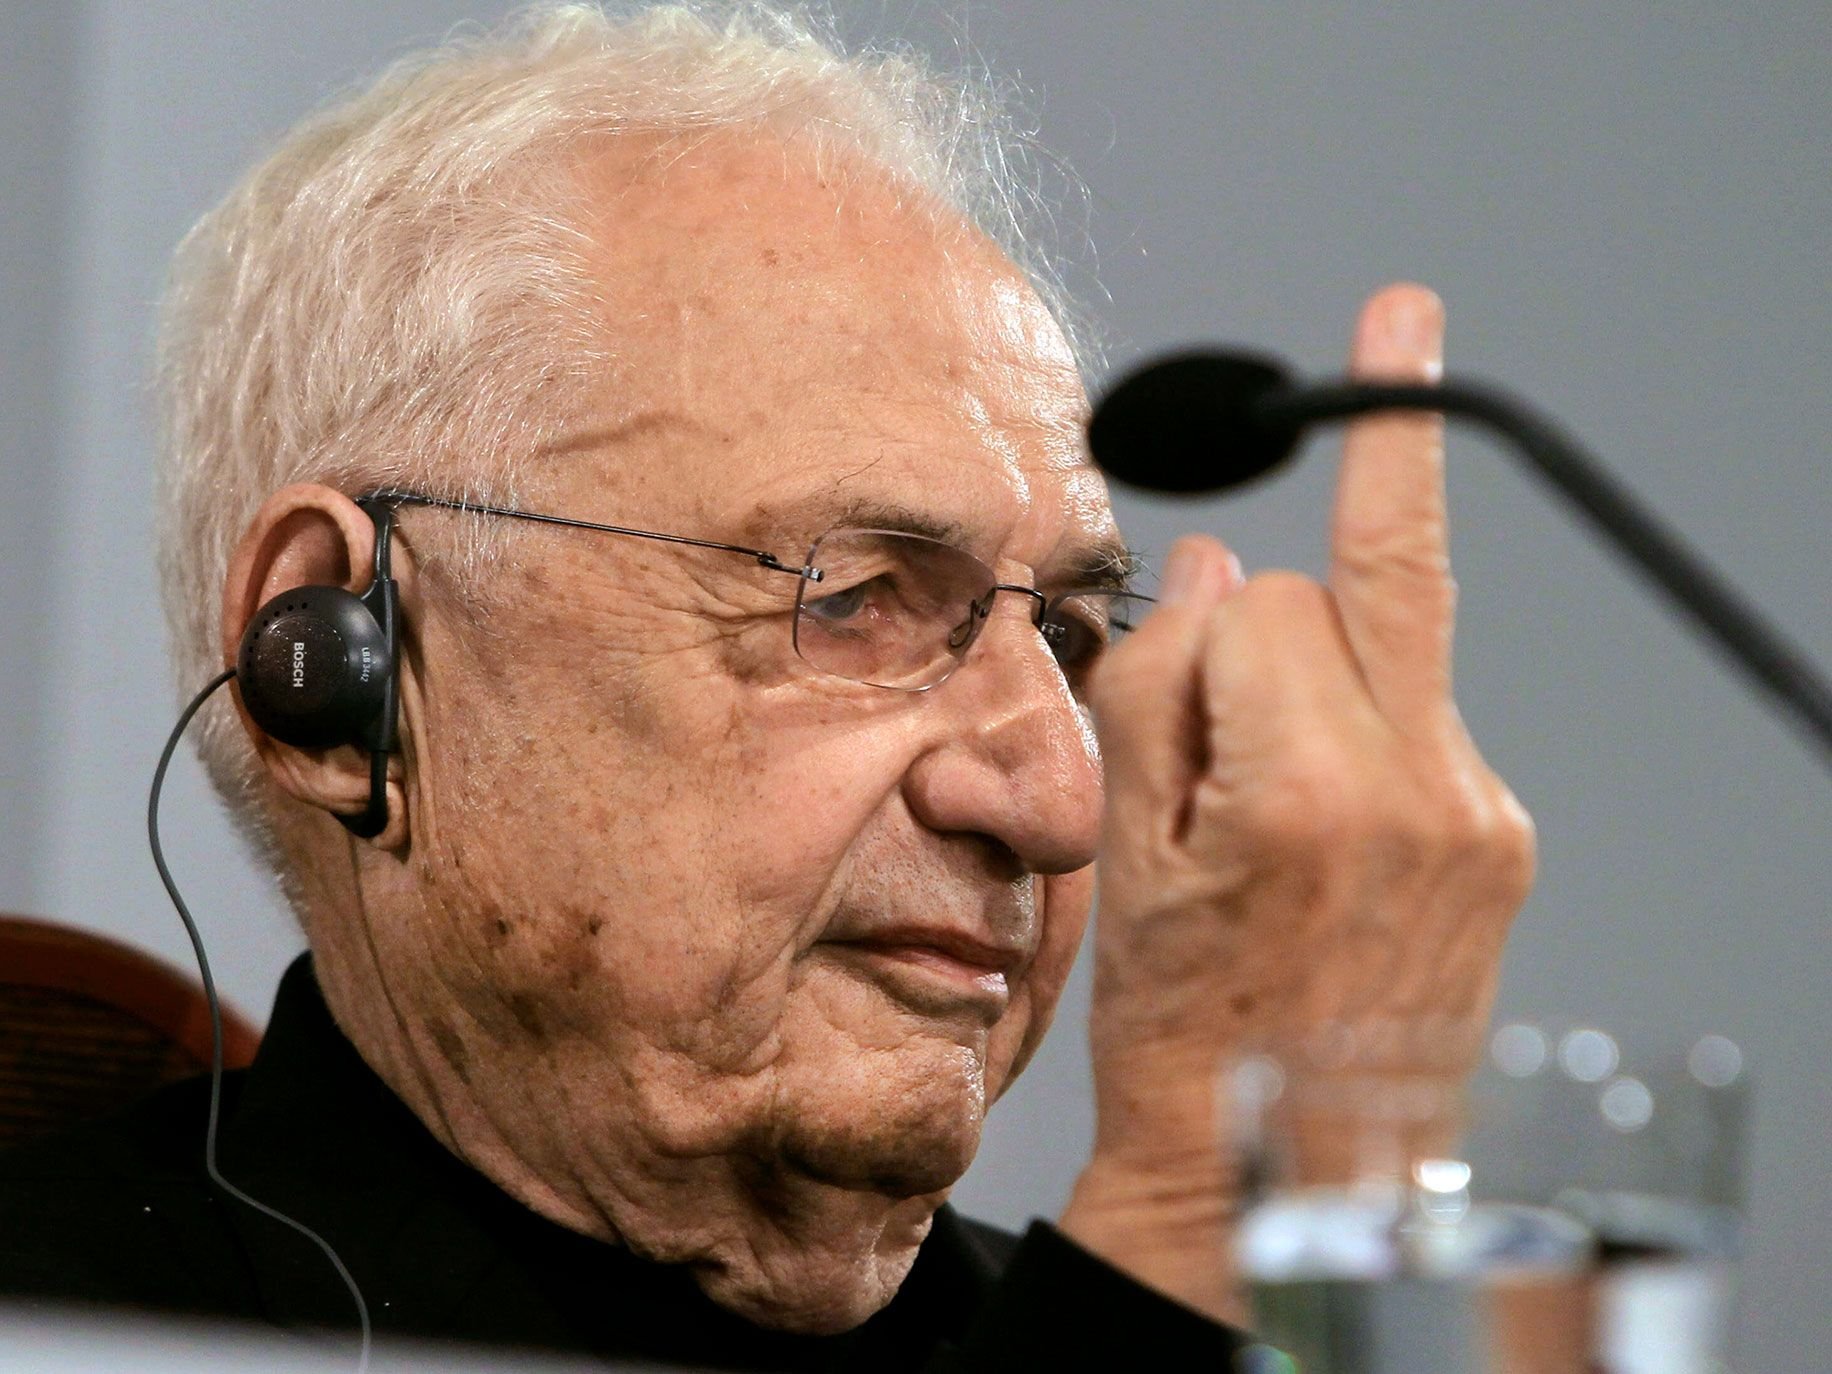 Gehry's response to a journalist who asked if his work is showy.